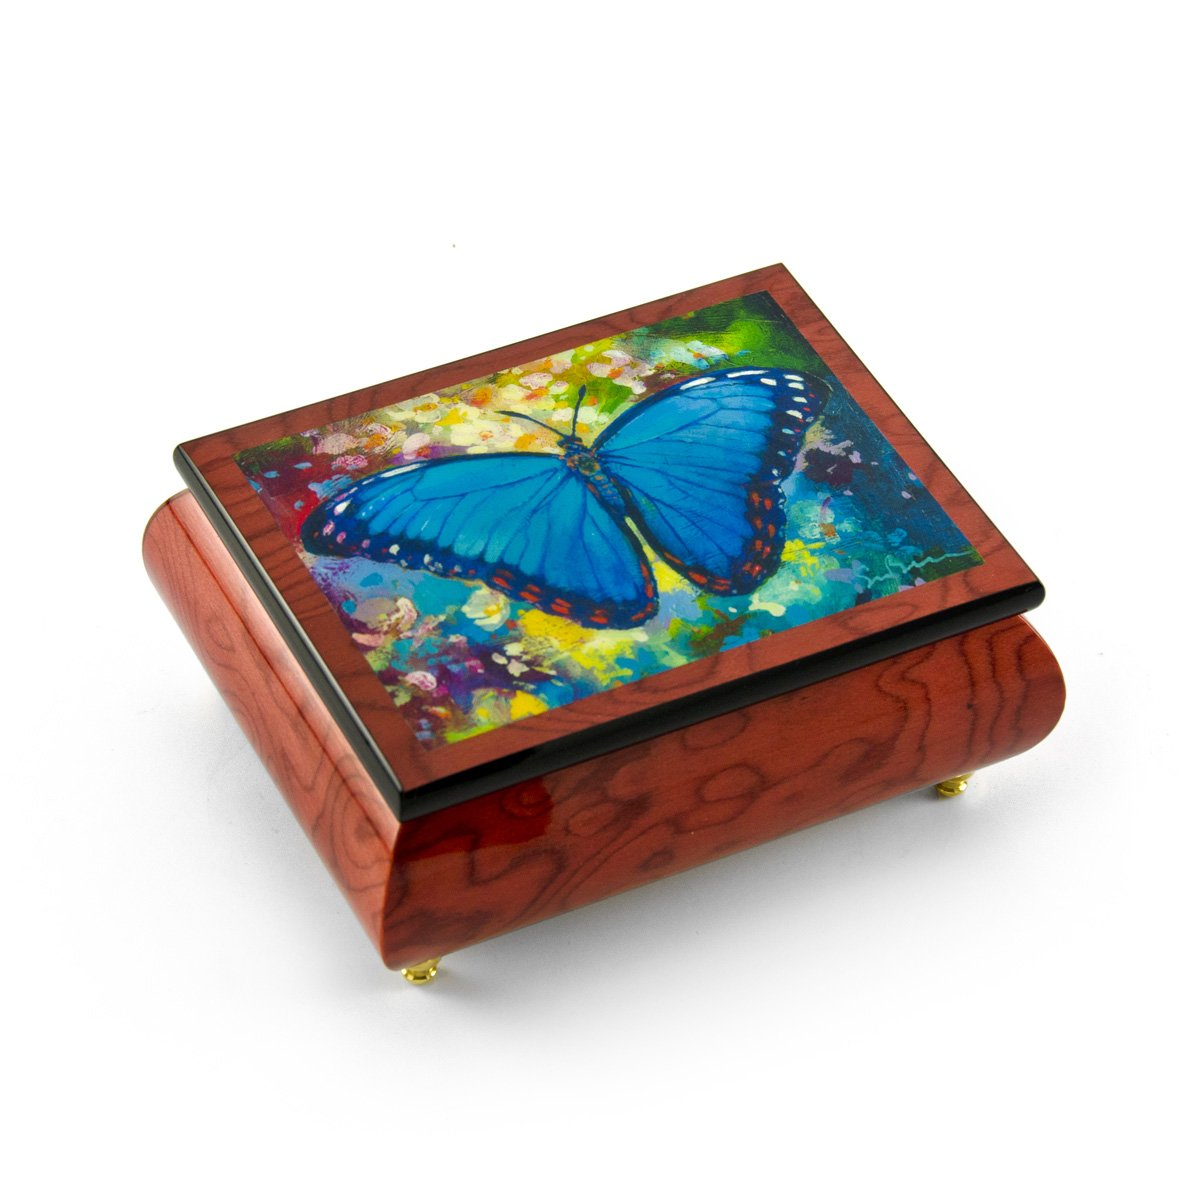 Gorgeous Handcrafted Red-Wine Butterfly Music Box by Ercolano - ''Blue Morpho'' Simon Bull - Rock of Ages - Christian Version by MusicBoxAttic